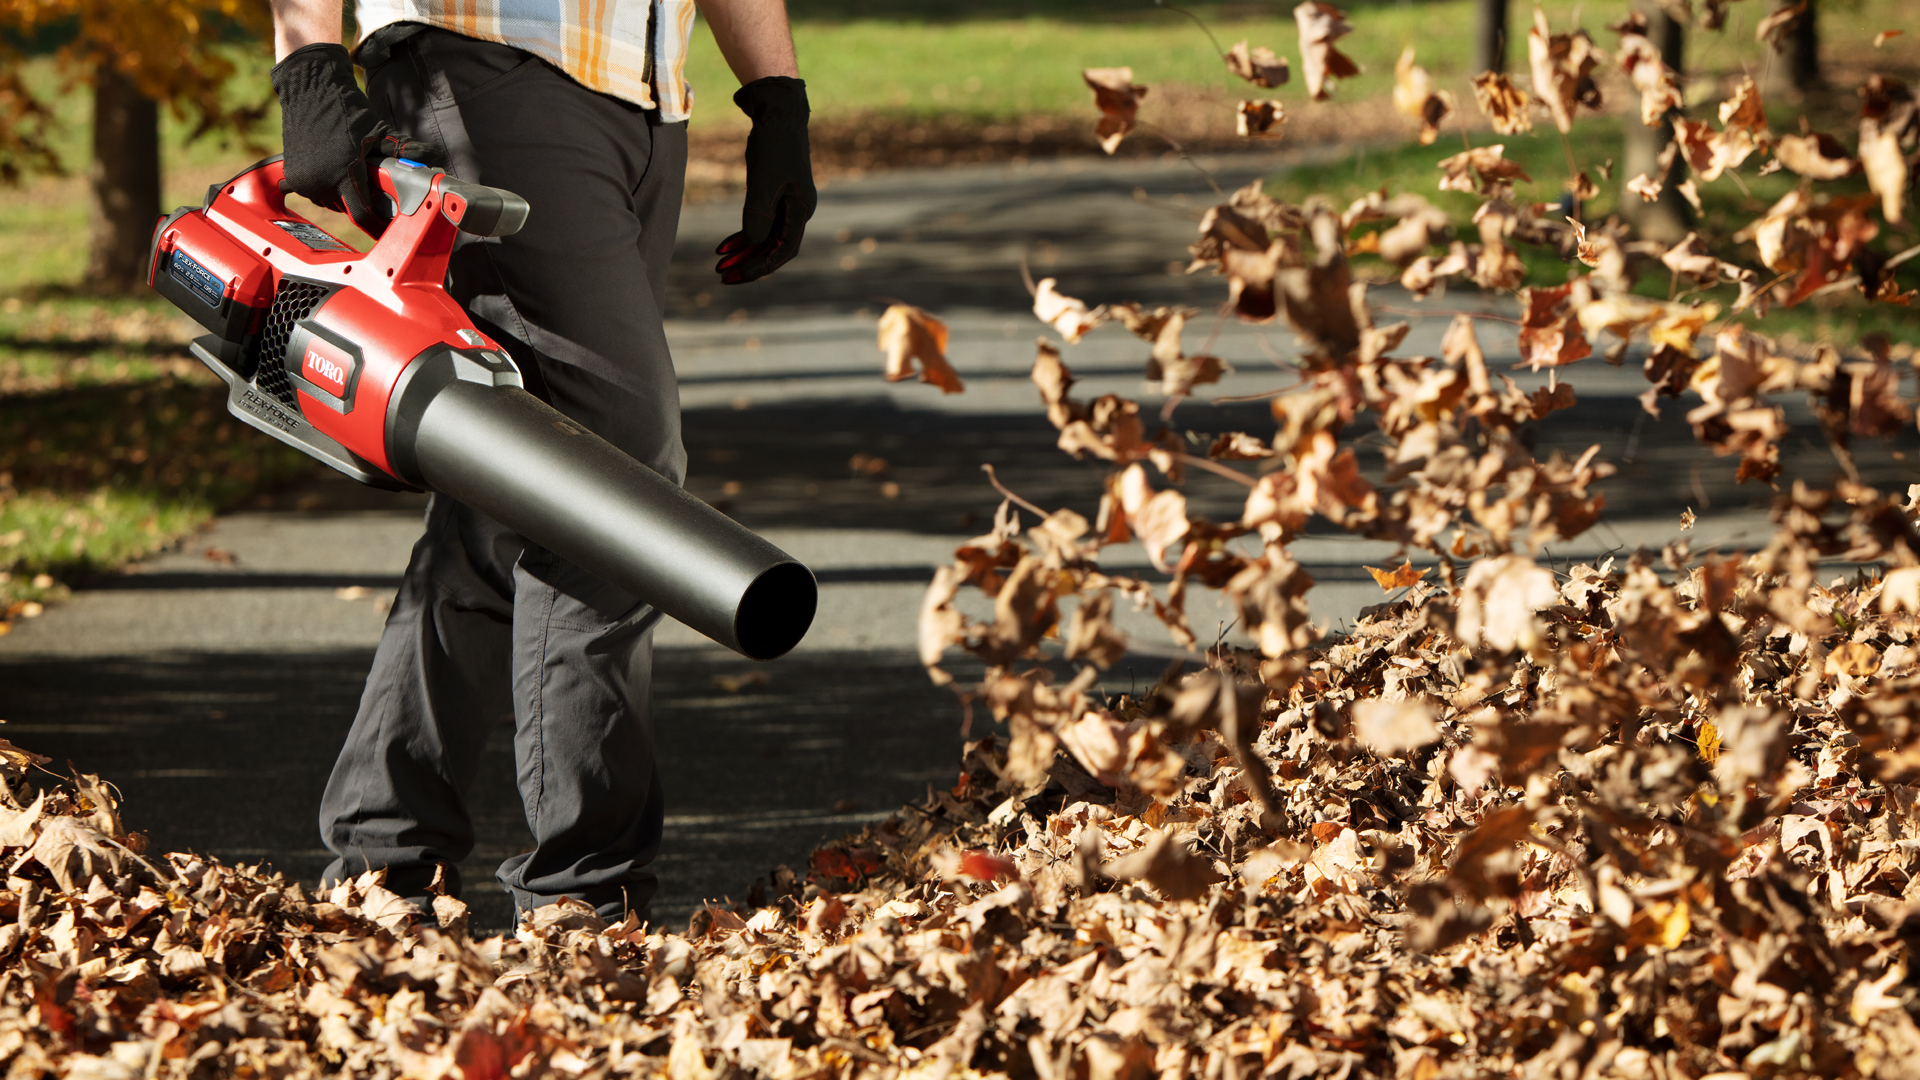 Toro leaf blower with a pile of leaves